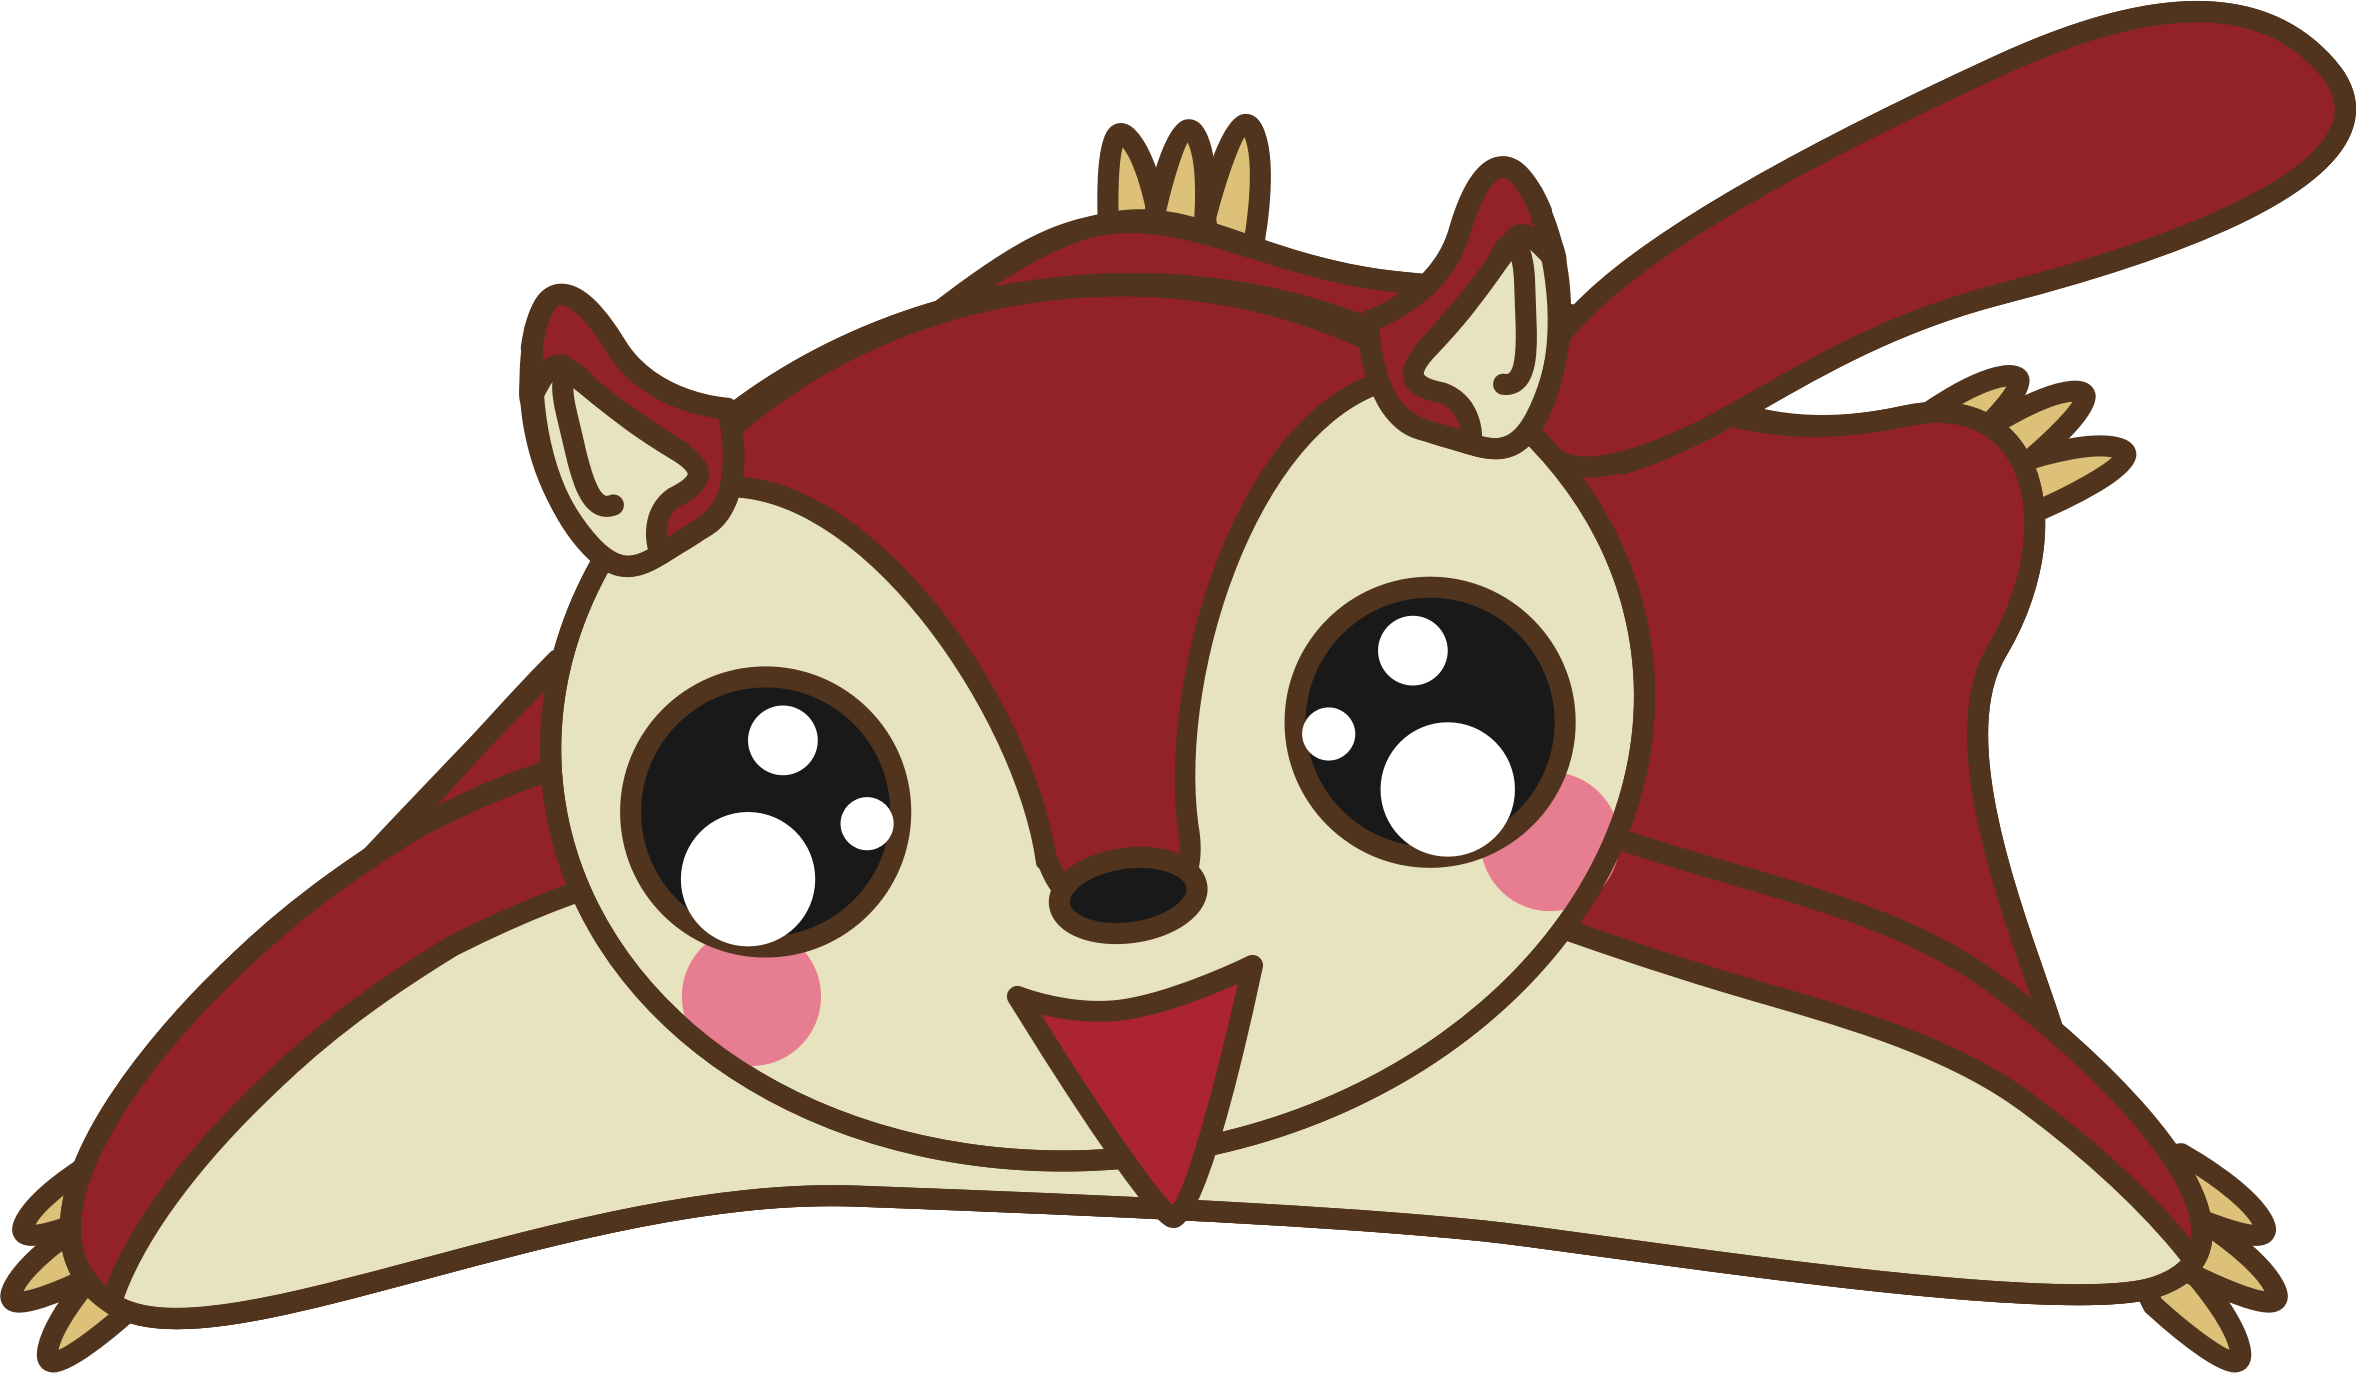 Ear clipart squirrel. Flying big image png